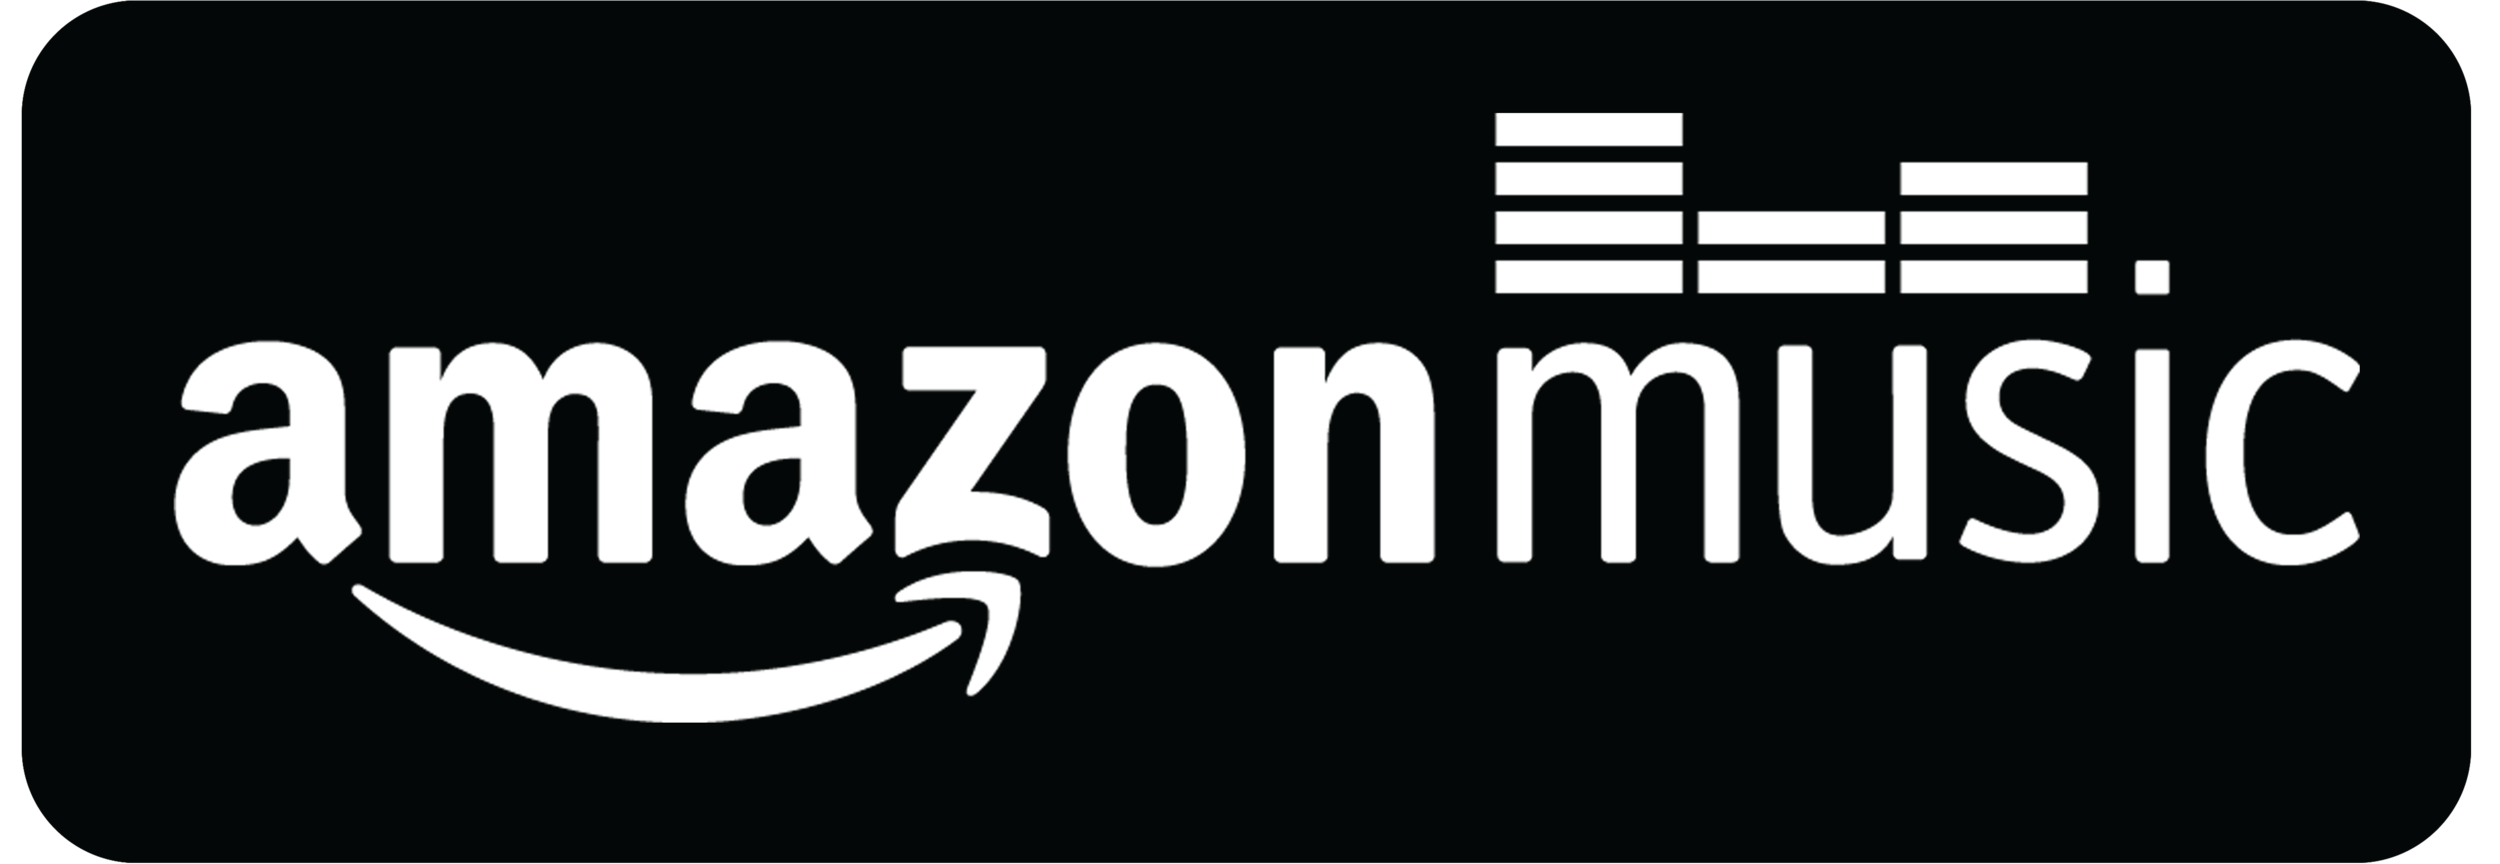 amazon-music-logo-png-4.png